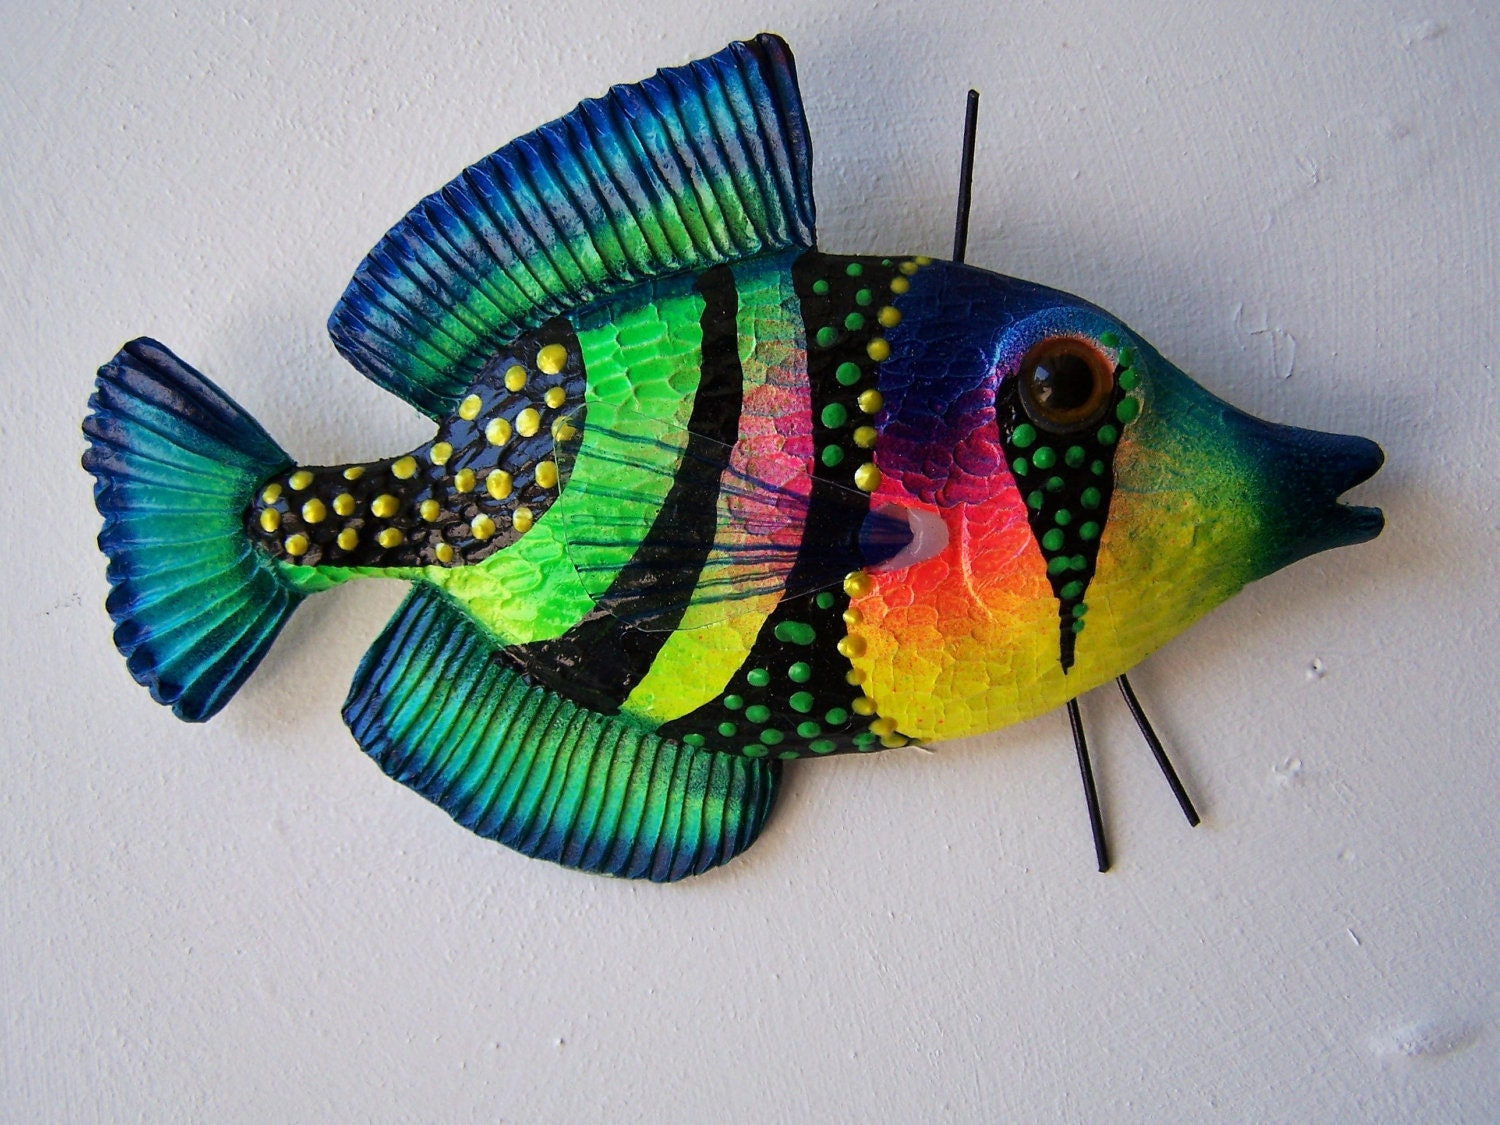 Fish art wall decor colorful fish sculpture for Fish wall decor